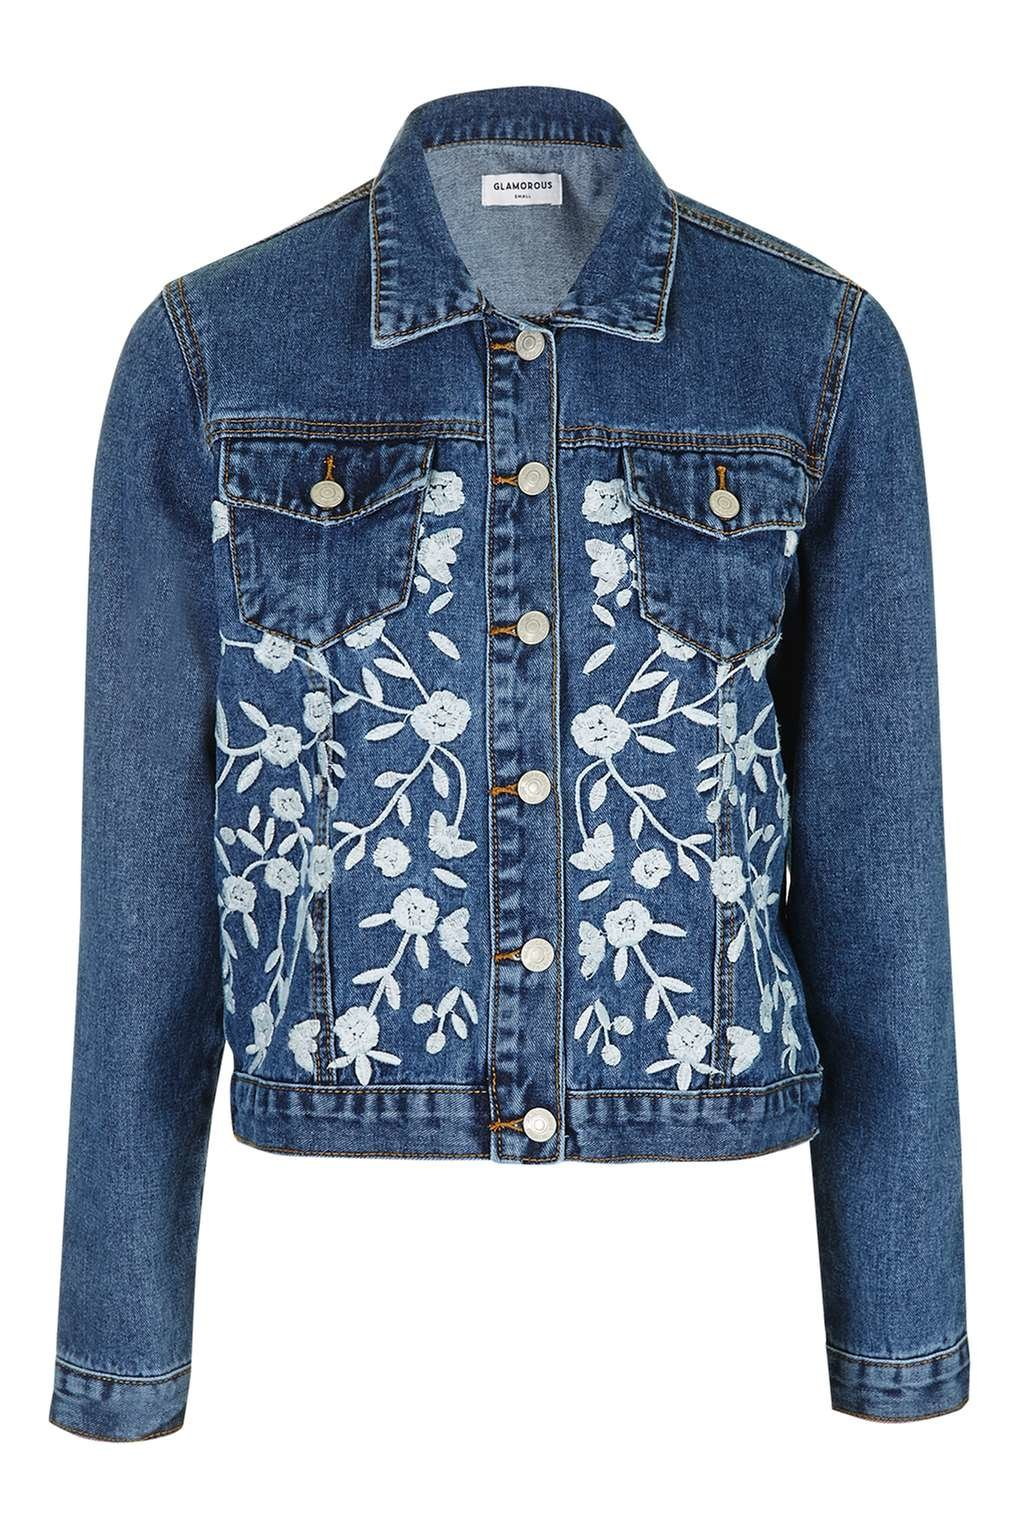 Topshop embroidered denim jacket by glamorous petites in